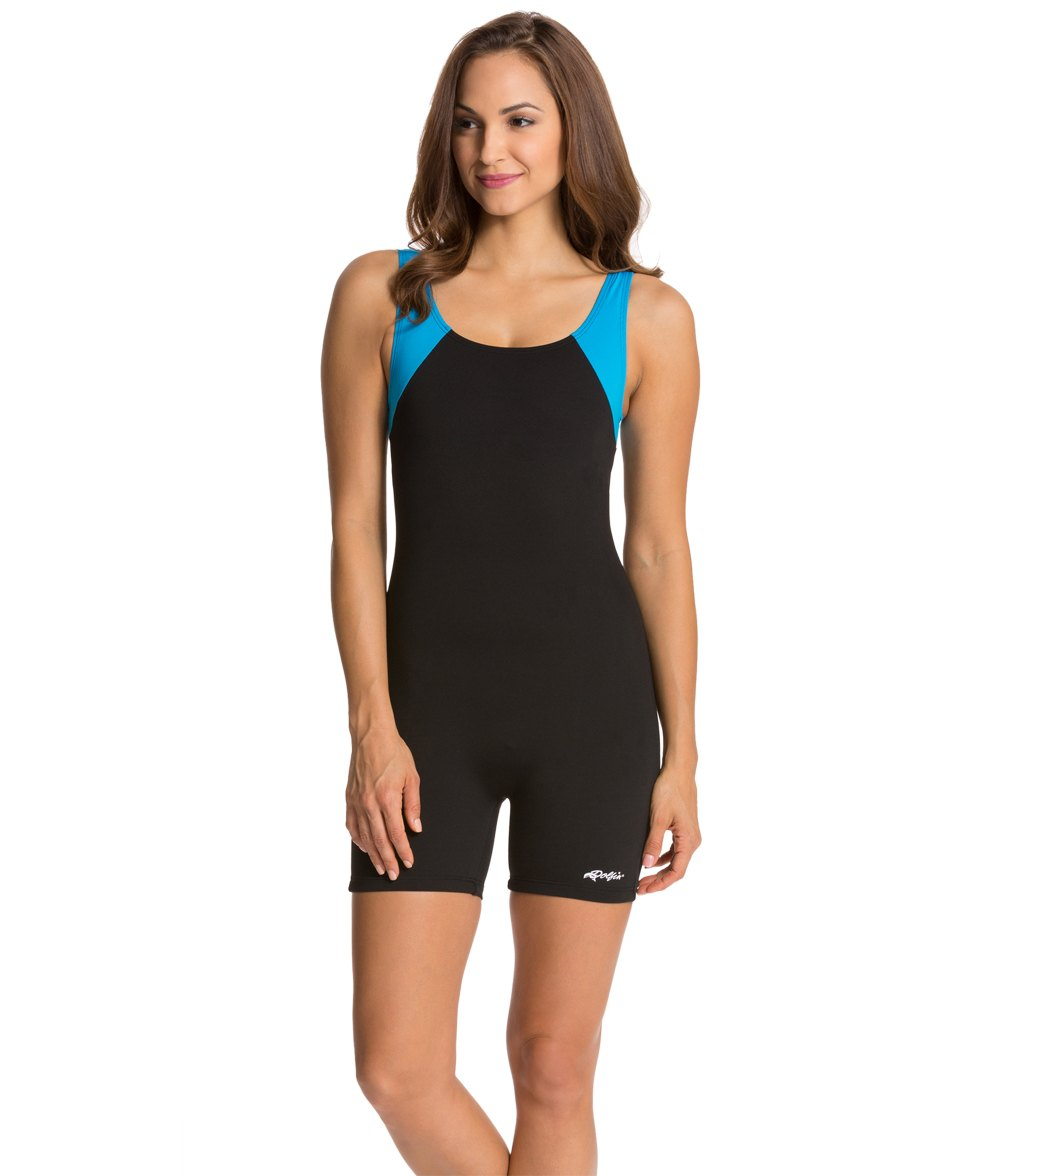 77f712aa0f Dolfin Women s Aquashape Aquatard Color Block Unitard Swimsuit at  SwimOutlet.com - Free Shipping